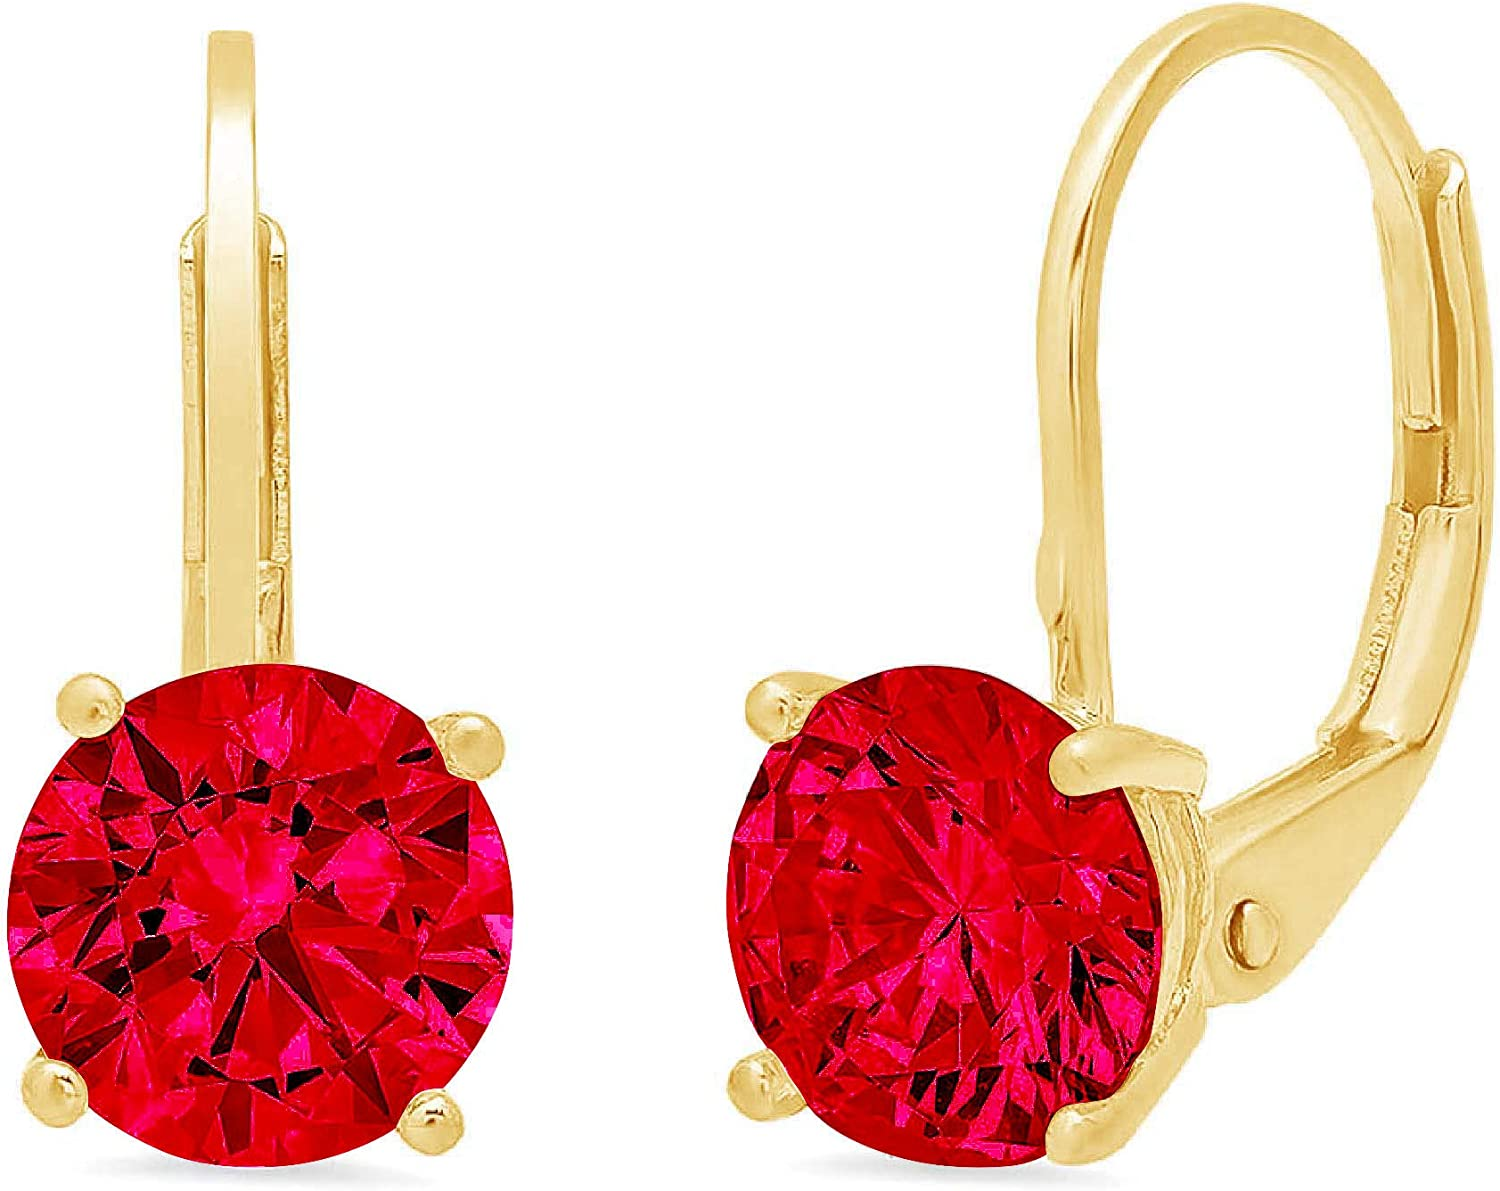 Clara Pucci 3.1 ct Brilliant Round Cut Solitaire VVS1 Flawless Simulated Ruby Gemstone Pair of Lever back Drop Dangle Earrings Solid 18K Yellow Gold